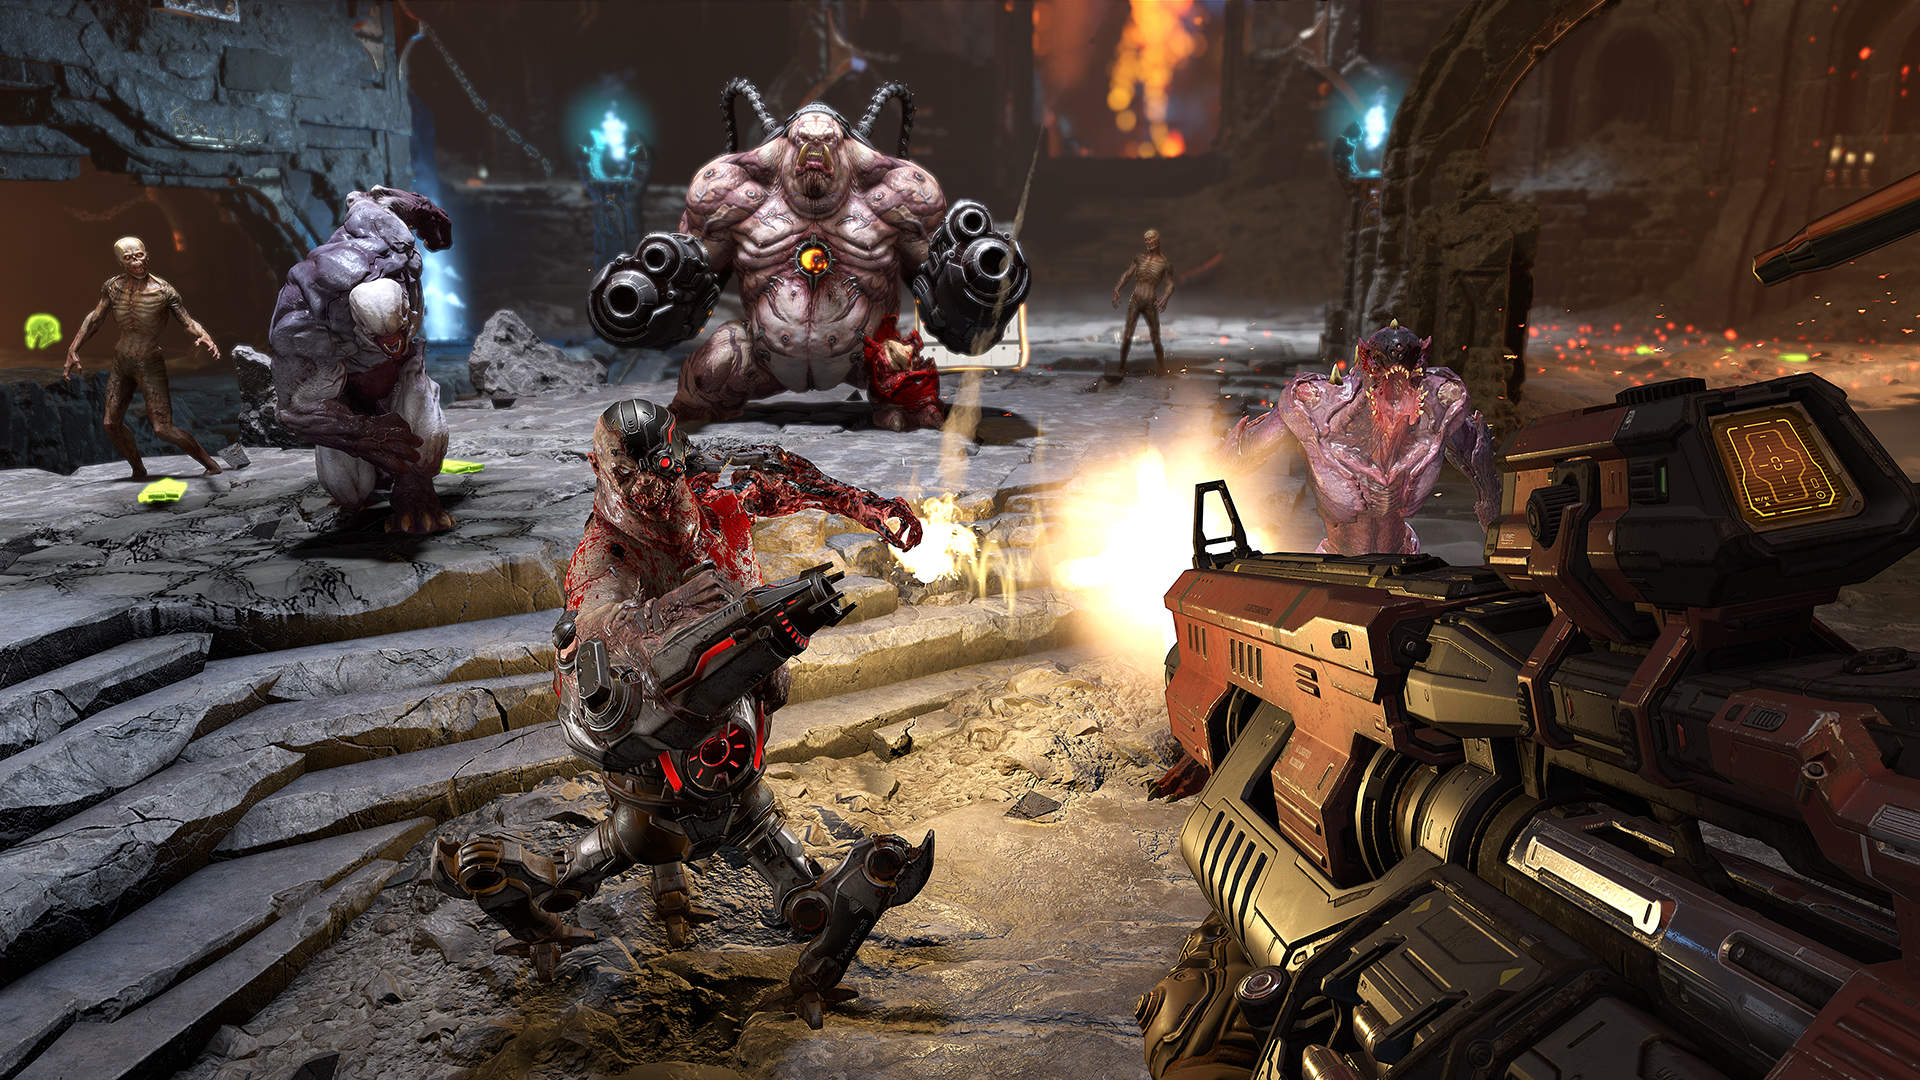 A hellish, stony room is viewed from the first person as a large gun fires on six demons of various appearances.